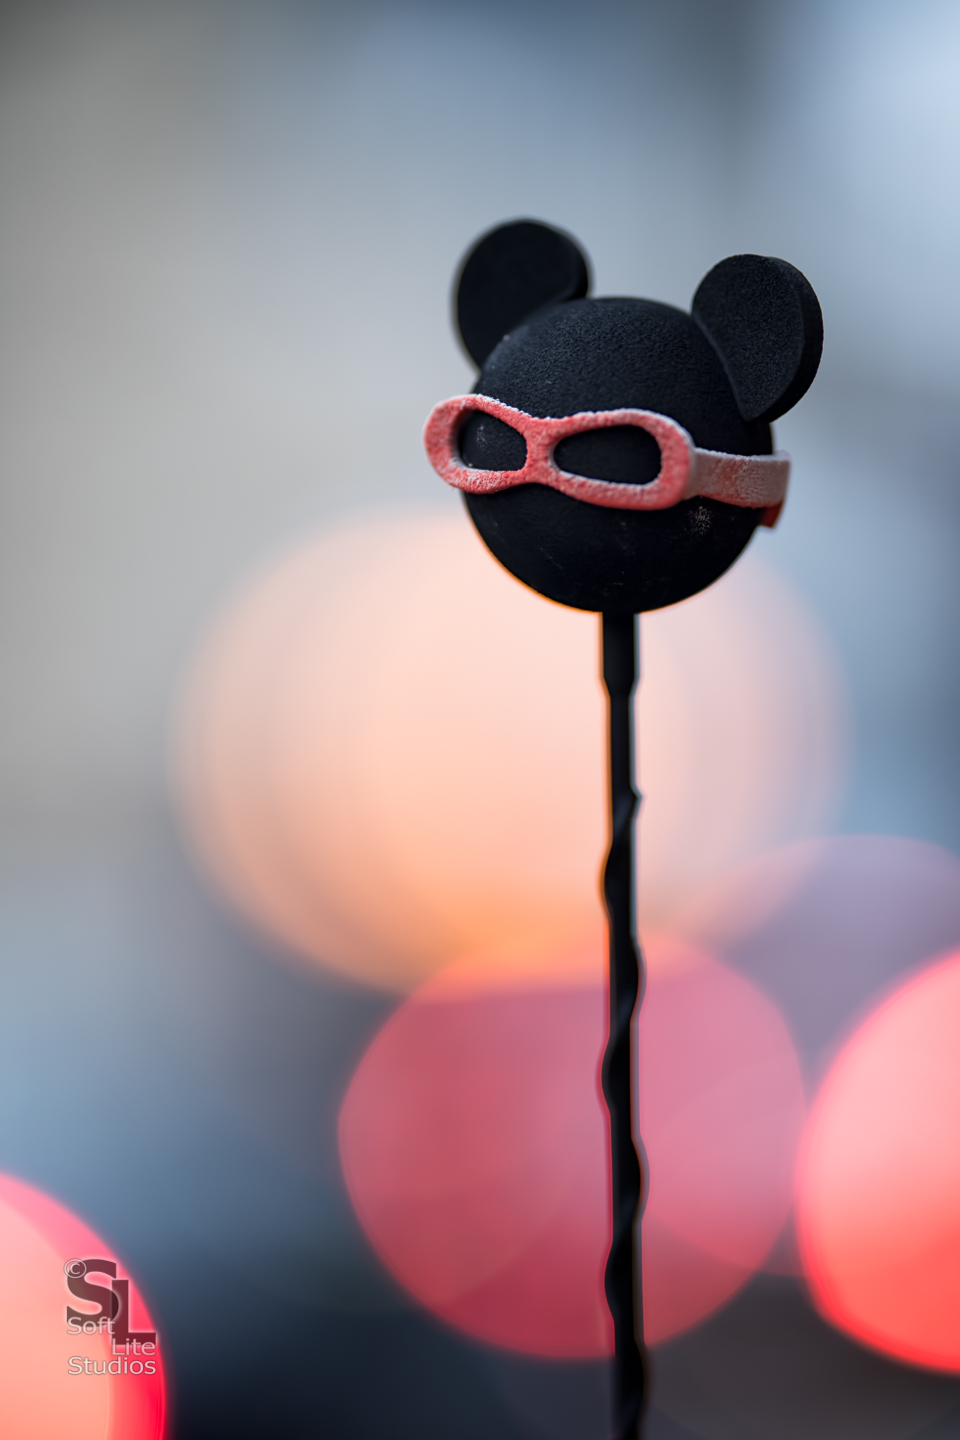 Follow Mickey. Copyright 2017, Tim Neumann (ISO 400, 1/200 @ f/1.8 - Canon 5D Mark IV, Sigma 135mm F1.8 DG HSM | A)